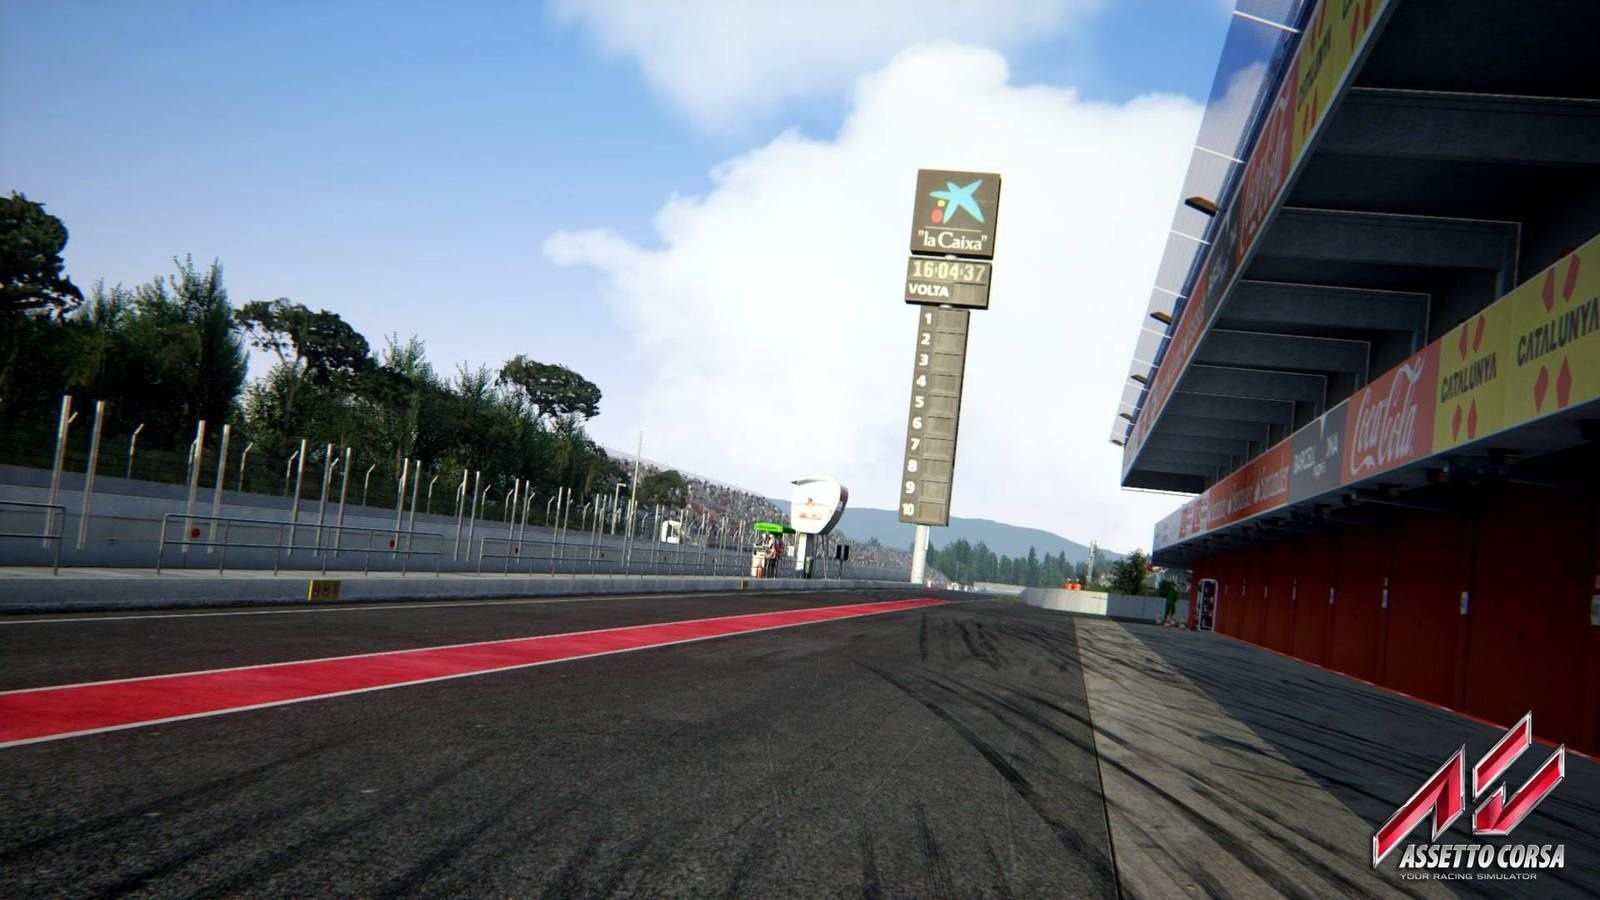 Assetto Corsa - 8 octobre, sortie du Dream Pack 2!